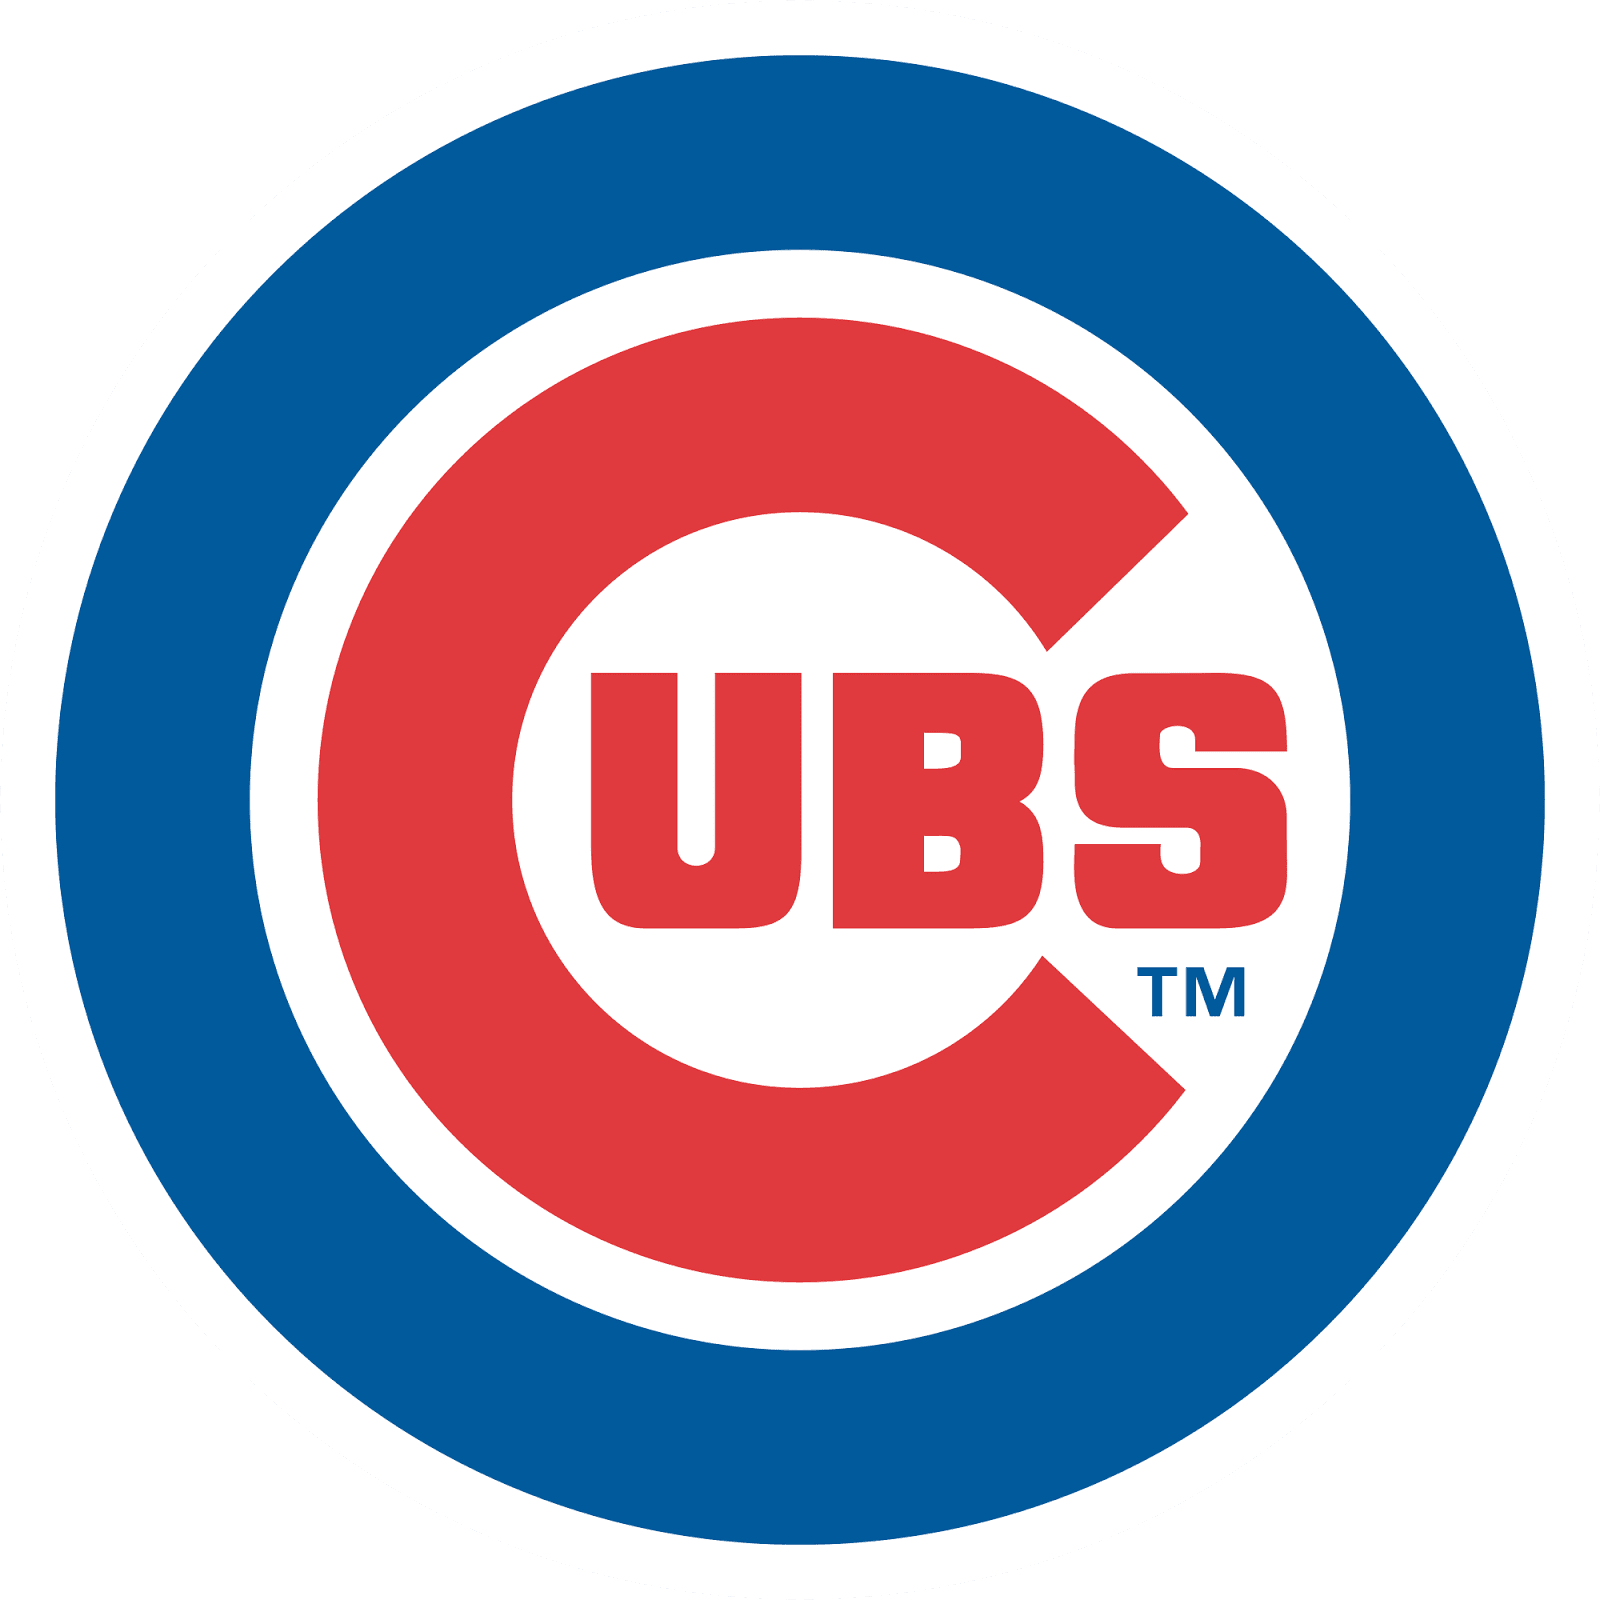 Chicago Cubs Trade Starlin Castro, Sign Ben Zobrist